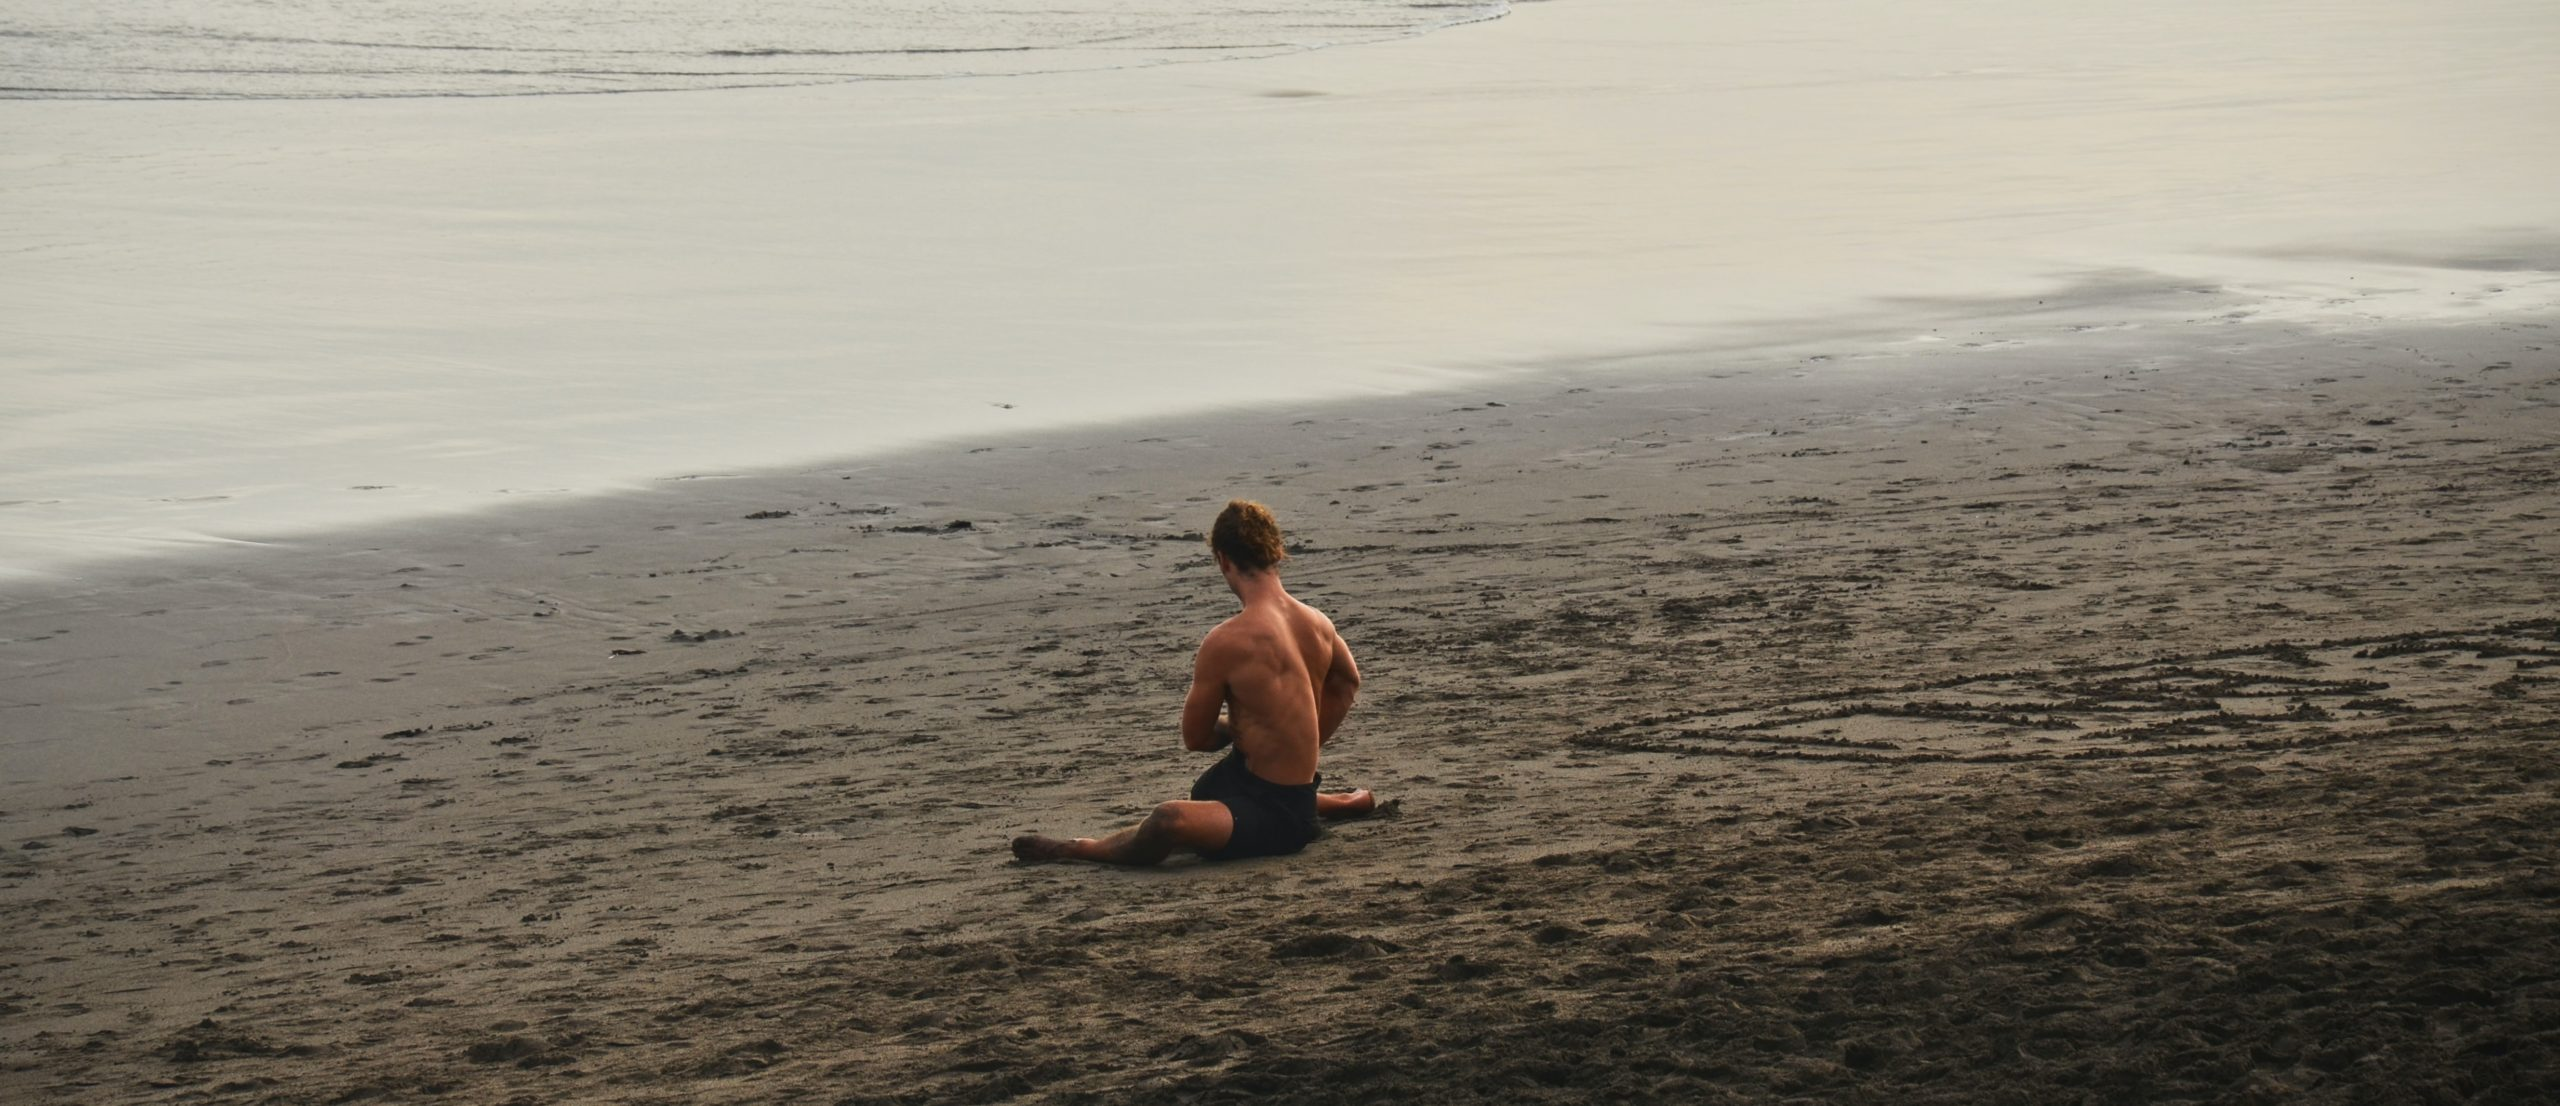 Muscular man stretching his back while on the beach